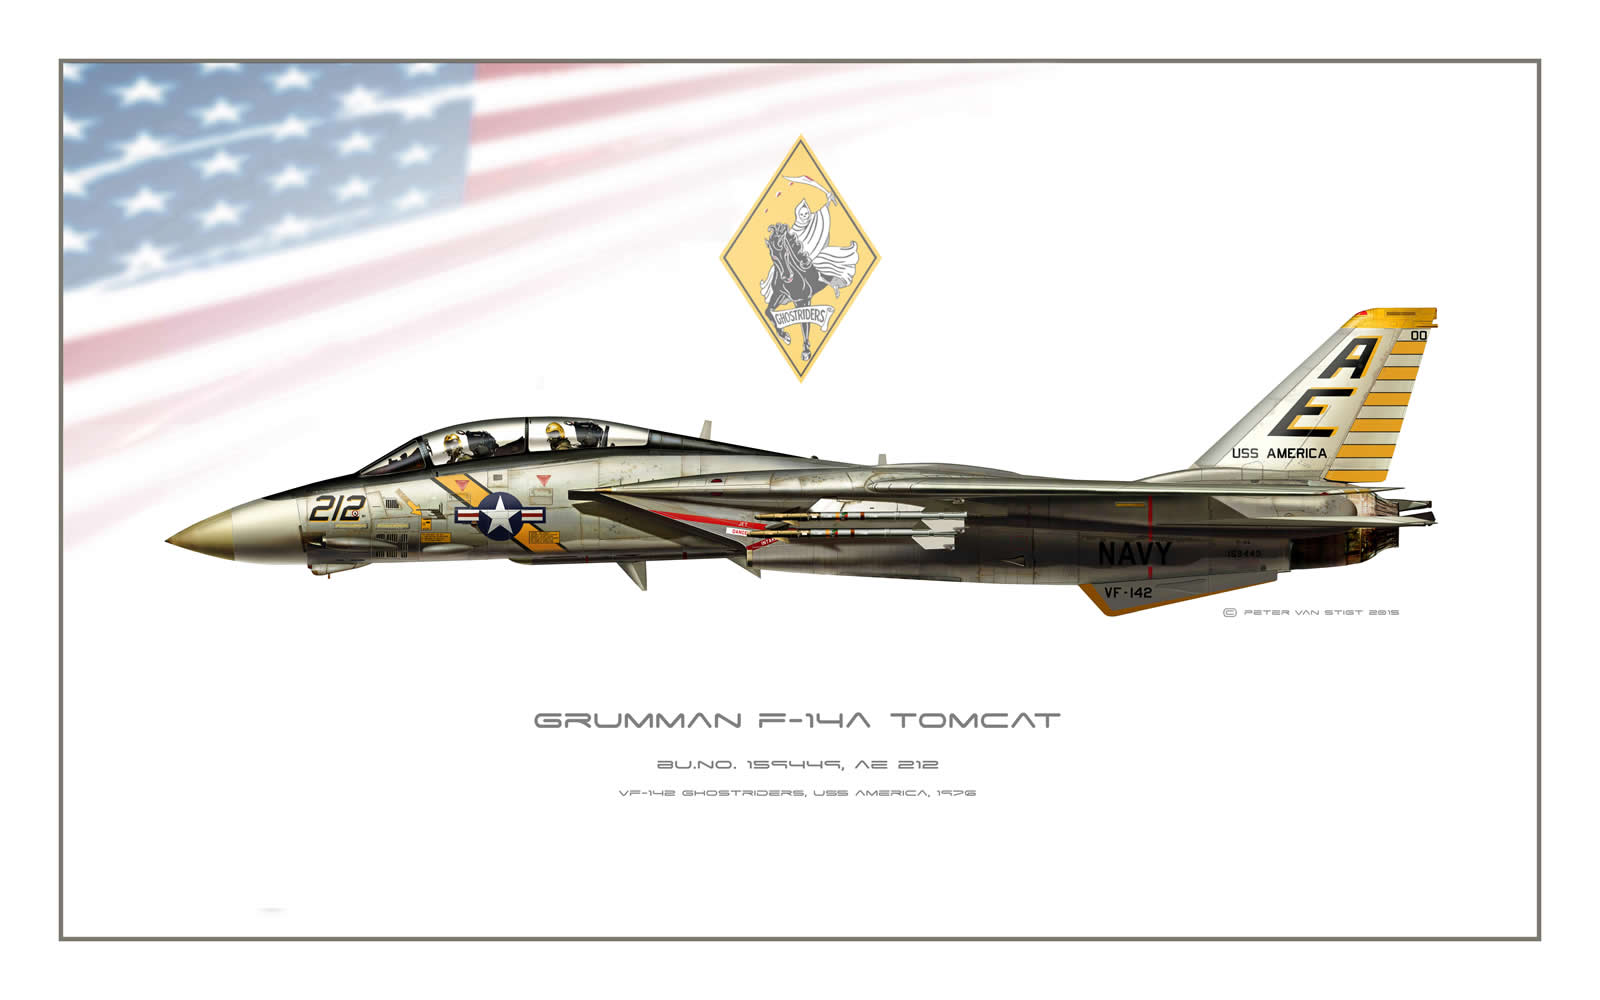 VF-142 Ghost Riders F-14 Tomcat Profile